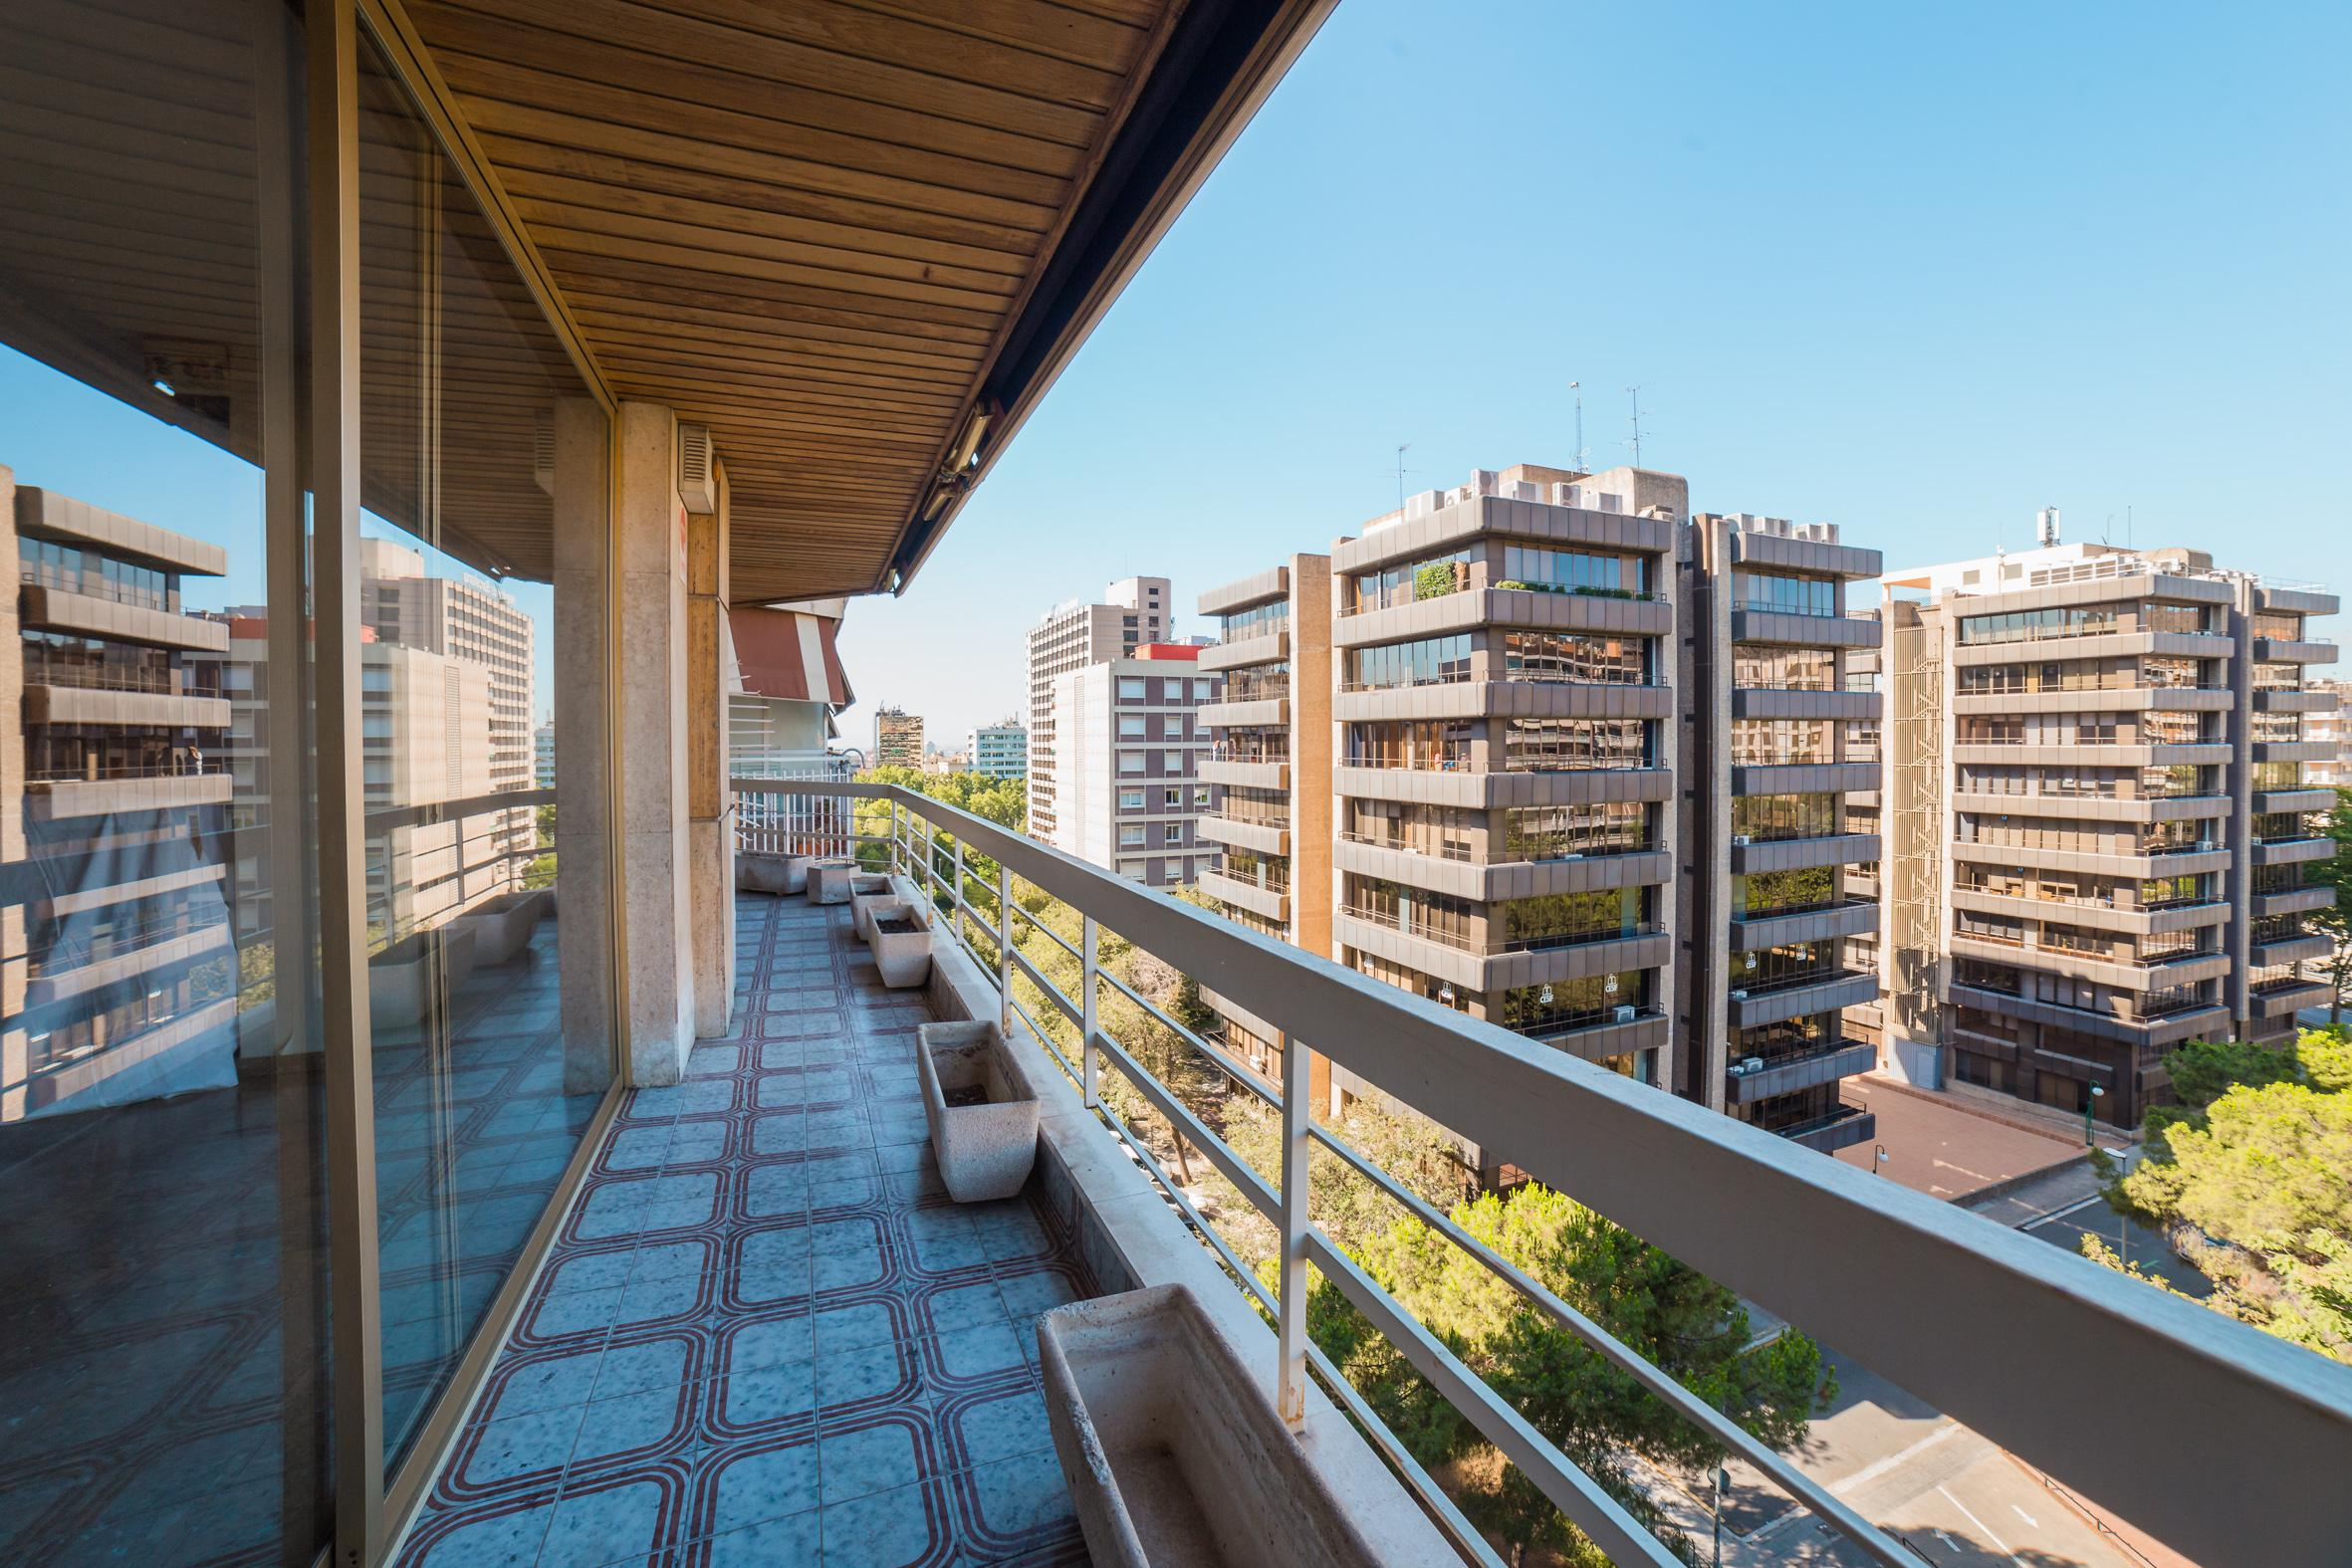 248988 Flat for sale in Les Corts, Les Corts 8